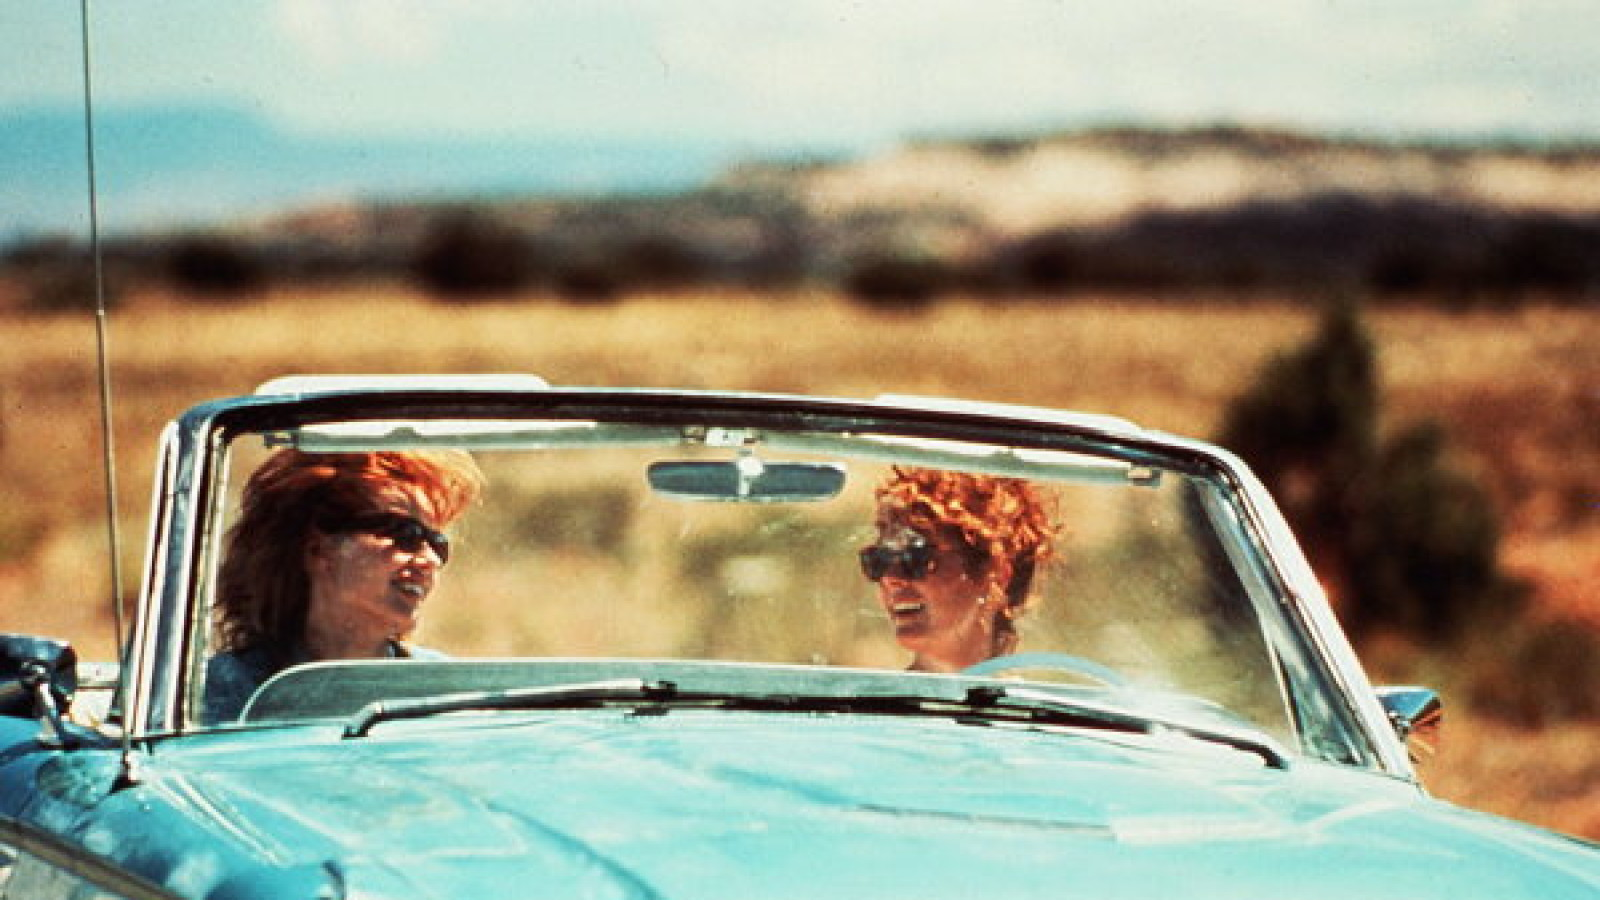 Title: THELMA AND LOUISE ¥ Pers: DAVIS, GEENA / SARANDON, SUSAN ¥ Year: 1991 ¥ Dir: SCOTT, RIDLEY ¥ Ref: THE079BE ¥ Credit: [ MGM/PATHE / THE KOBAL COLLECTION ]